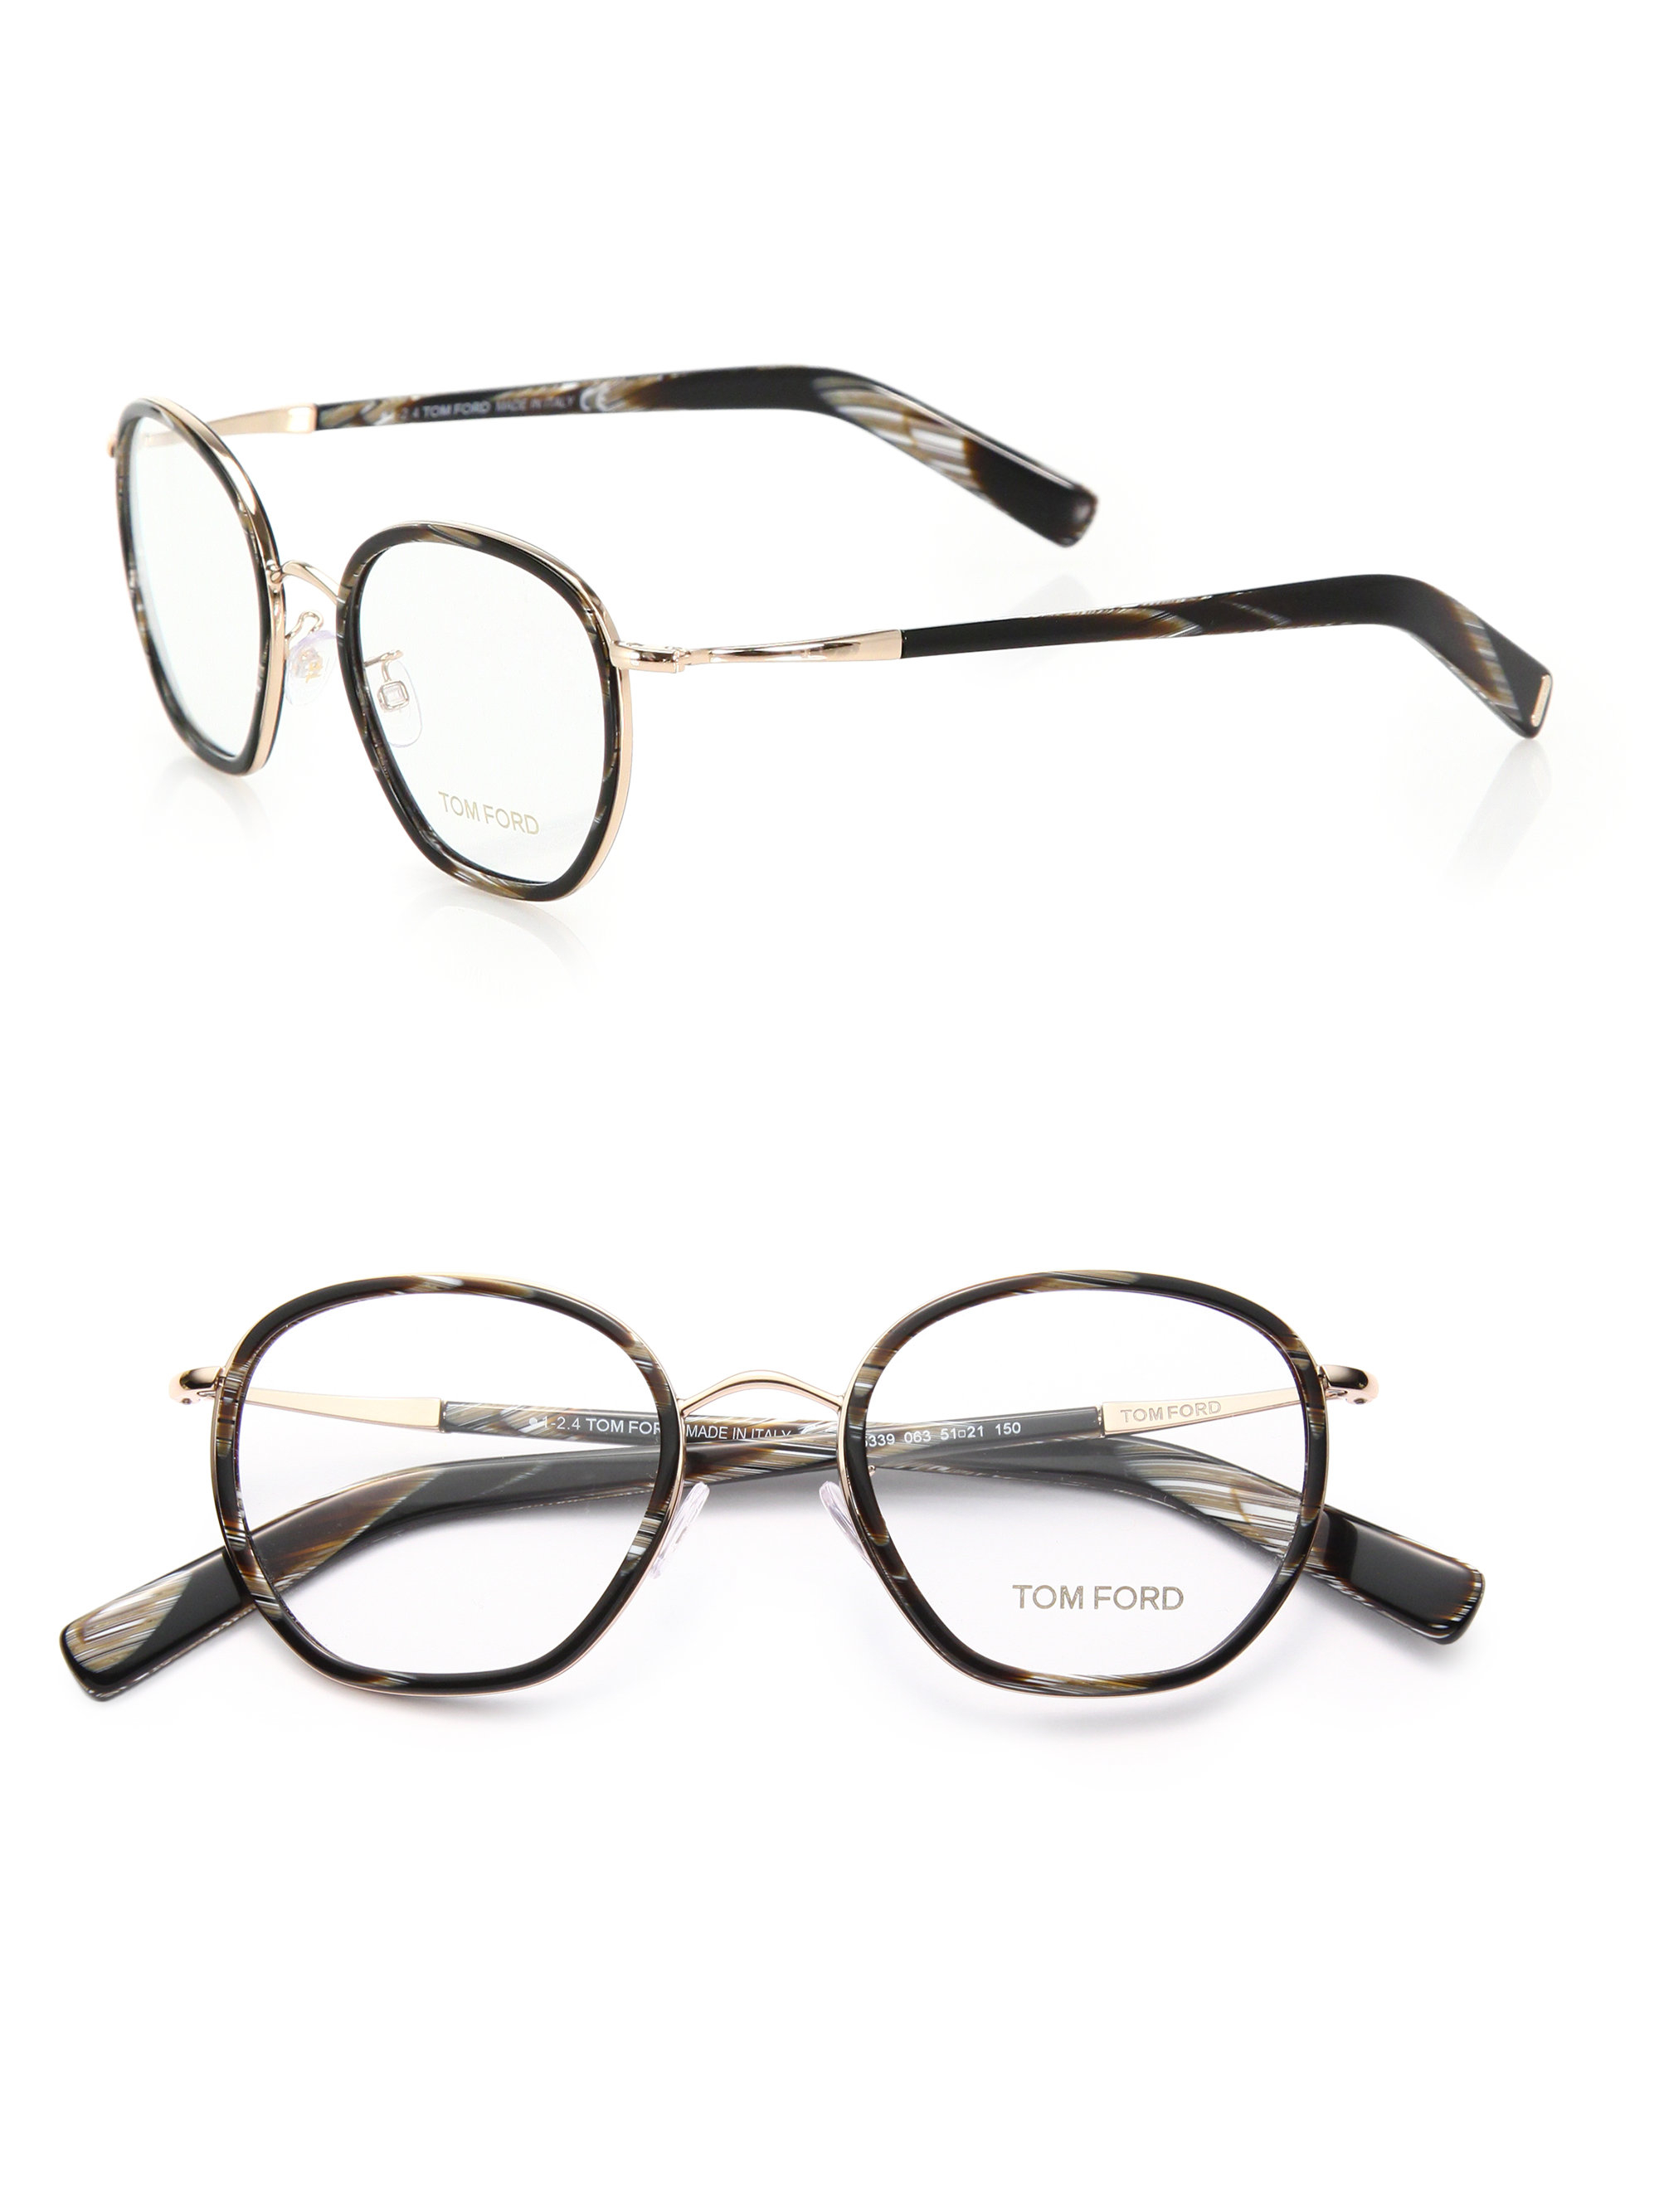 Tom ford 51mm Round Acetate & Metal Optical Glasses in ...